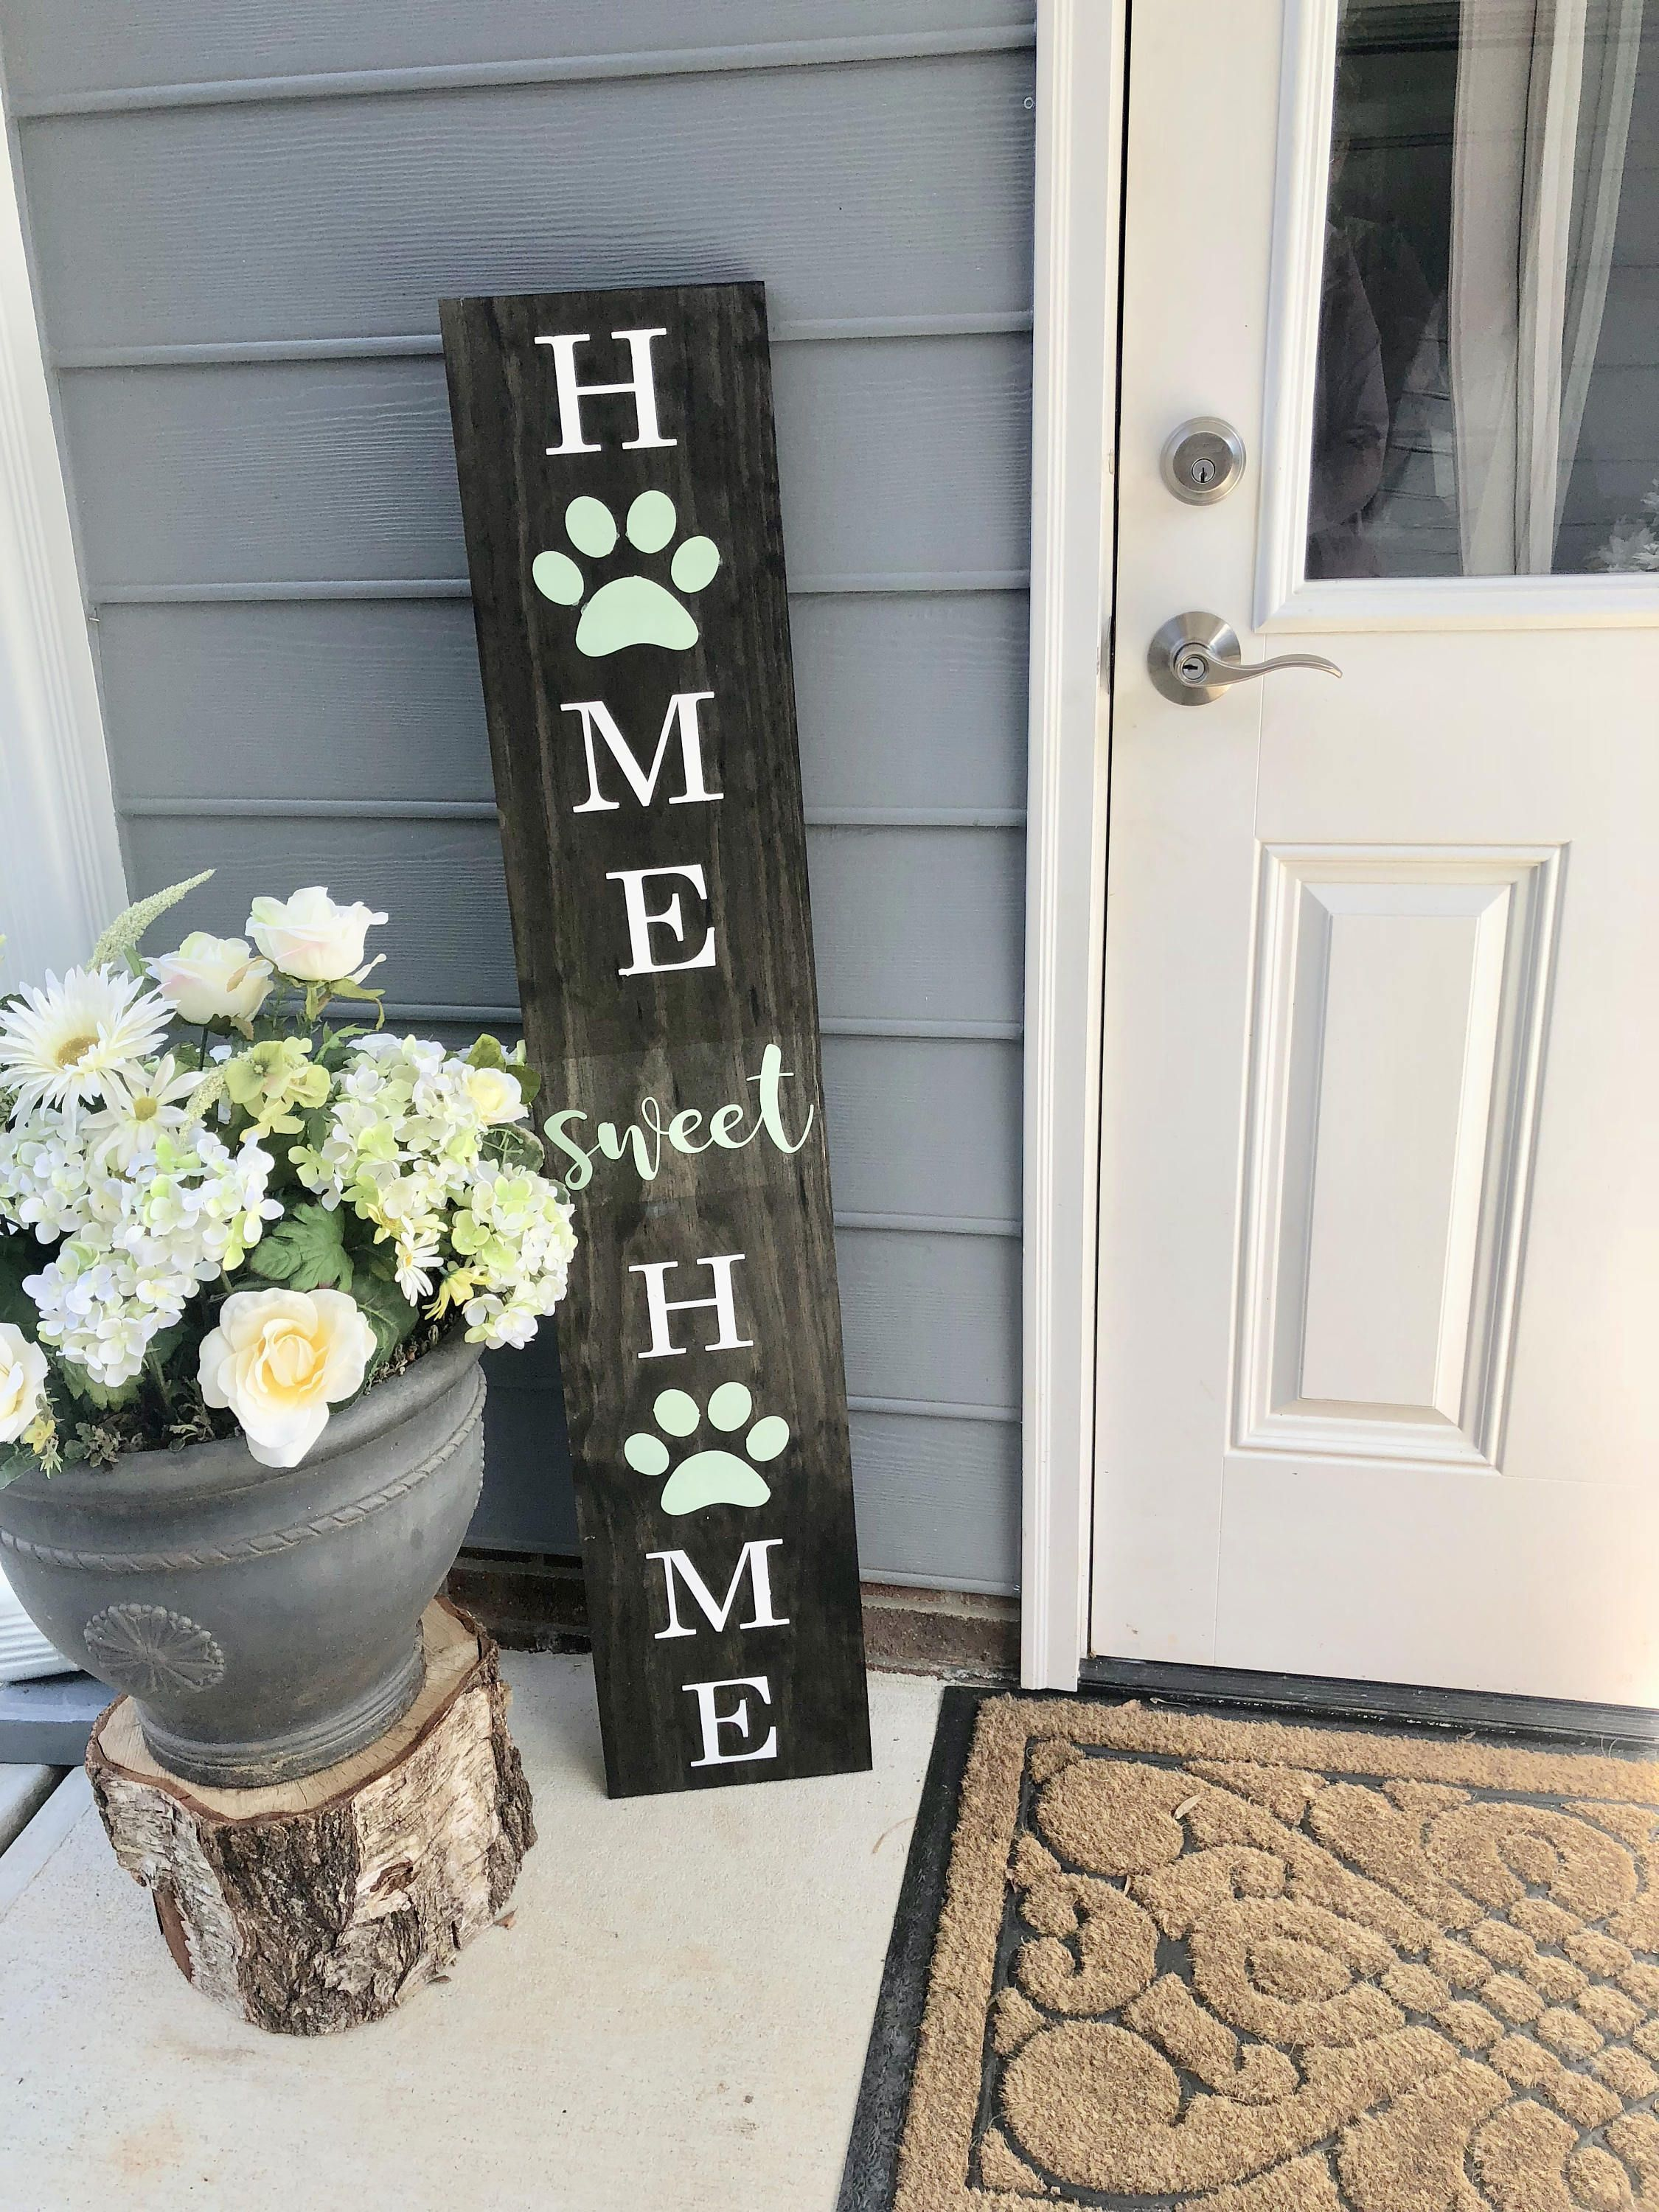 Paw Print Front Porch Sign  Home Sweet Home with Paw Prints  | Etsy